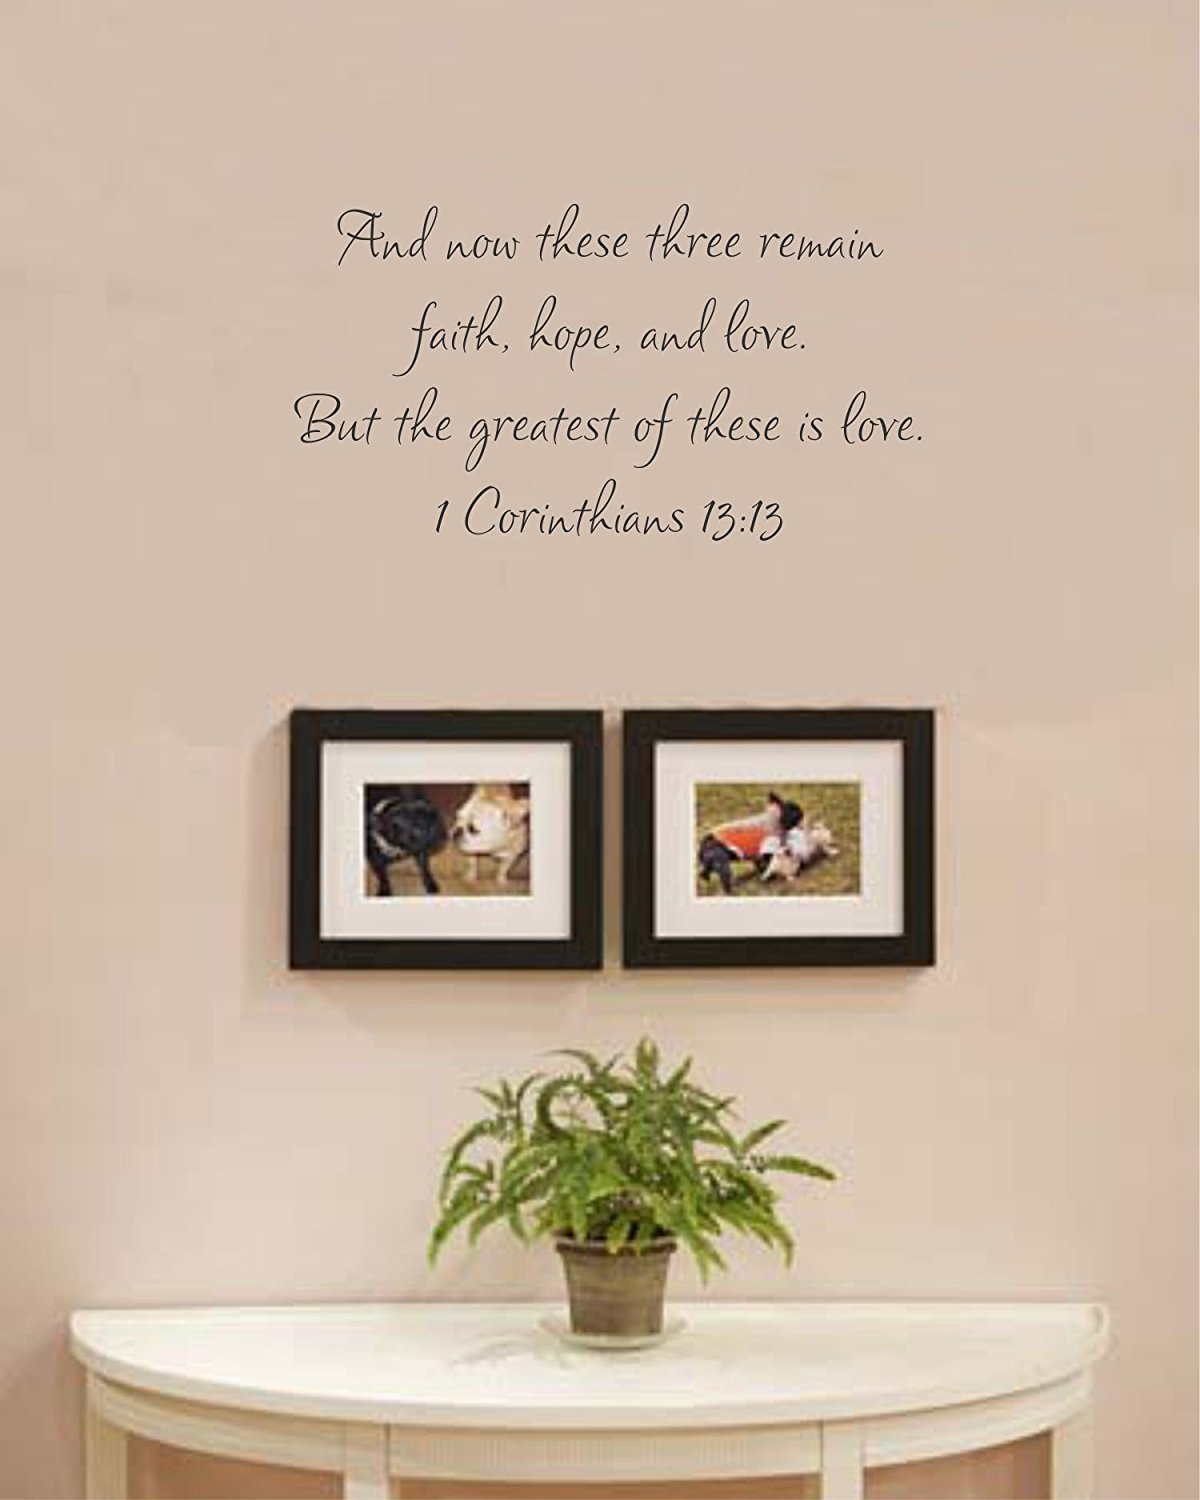 And now these three remain faith wall decal